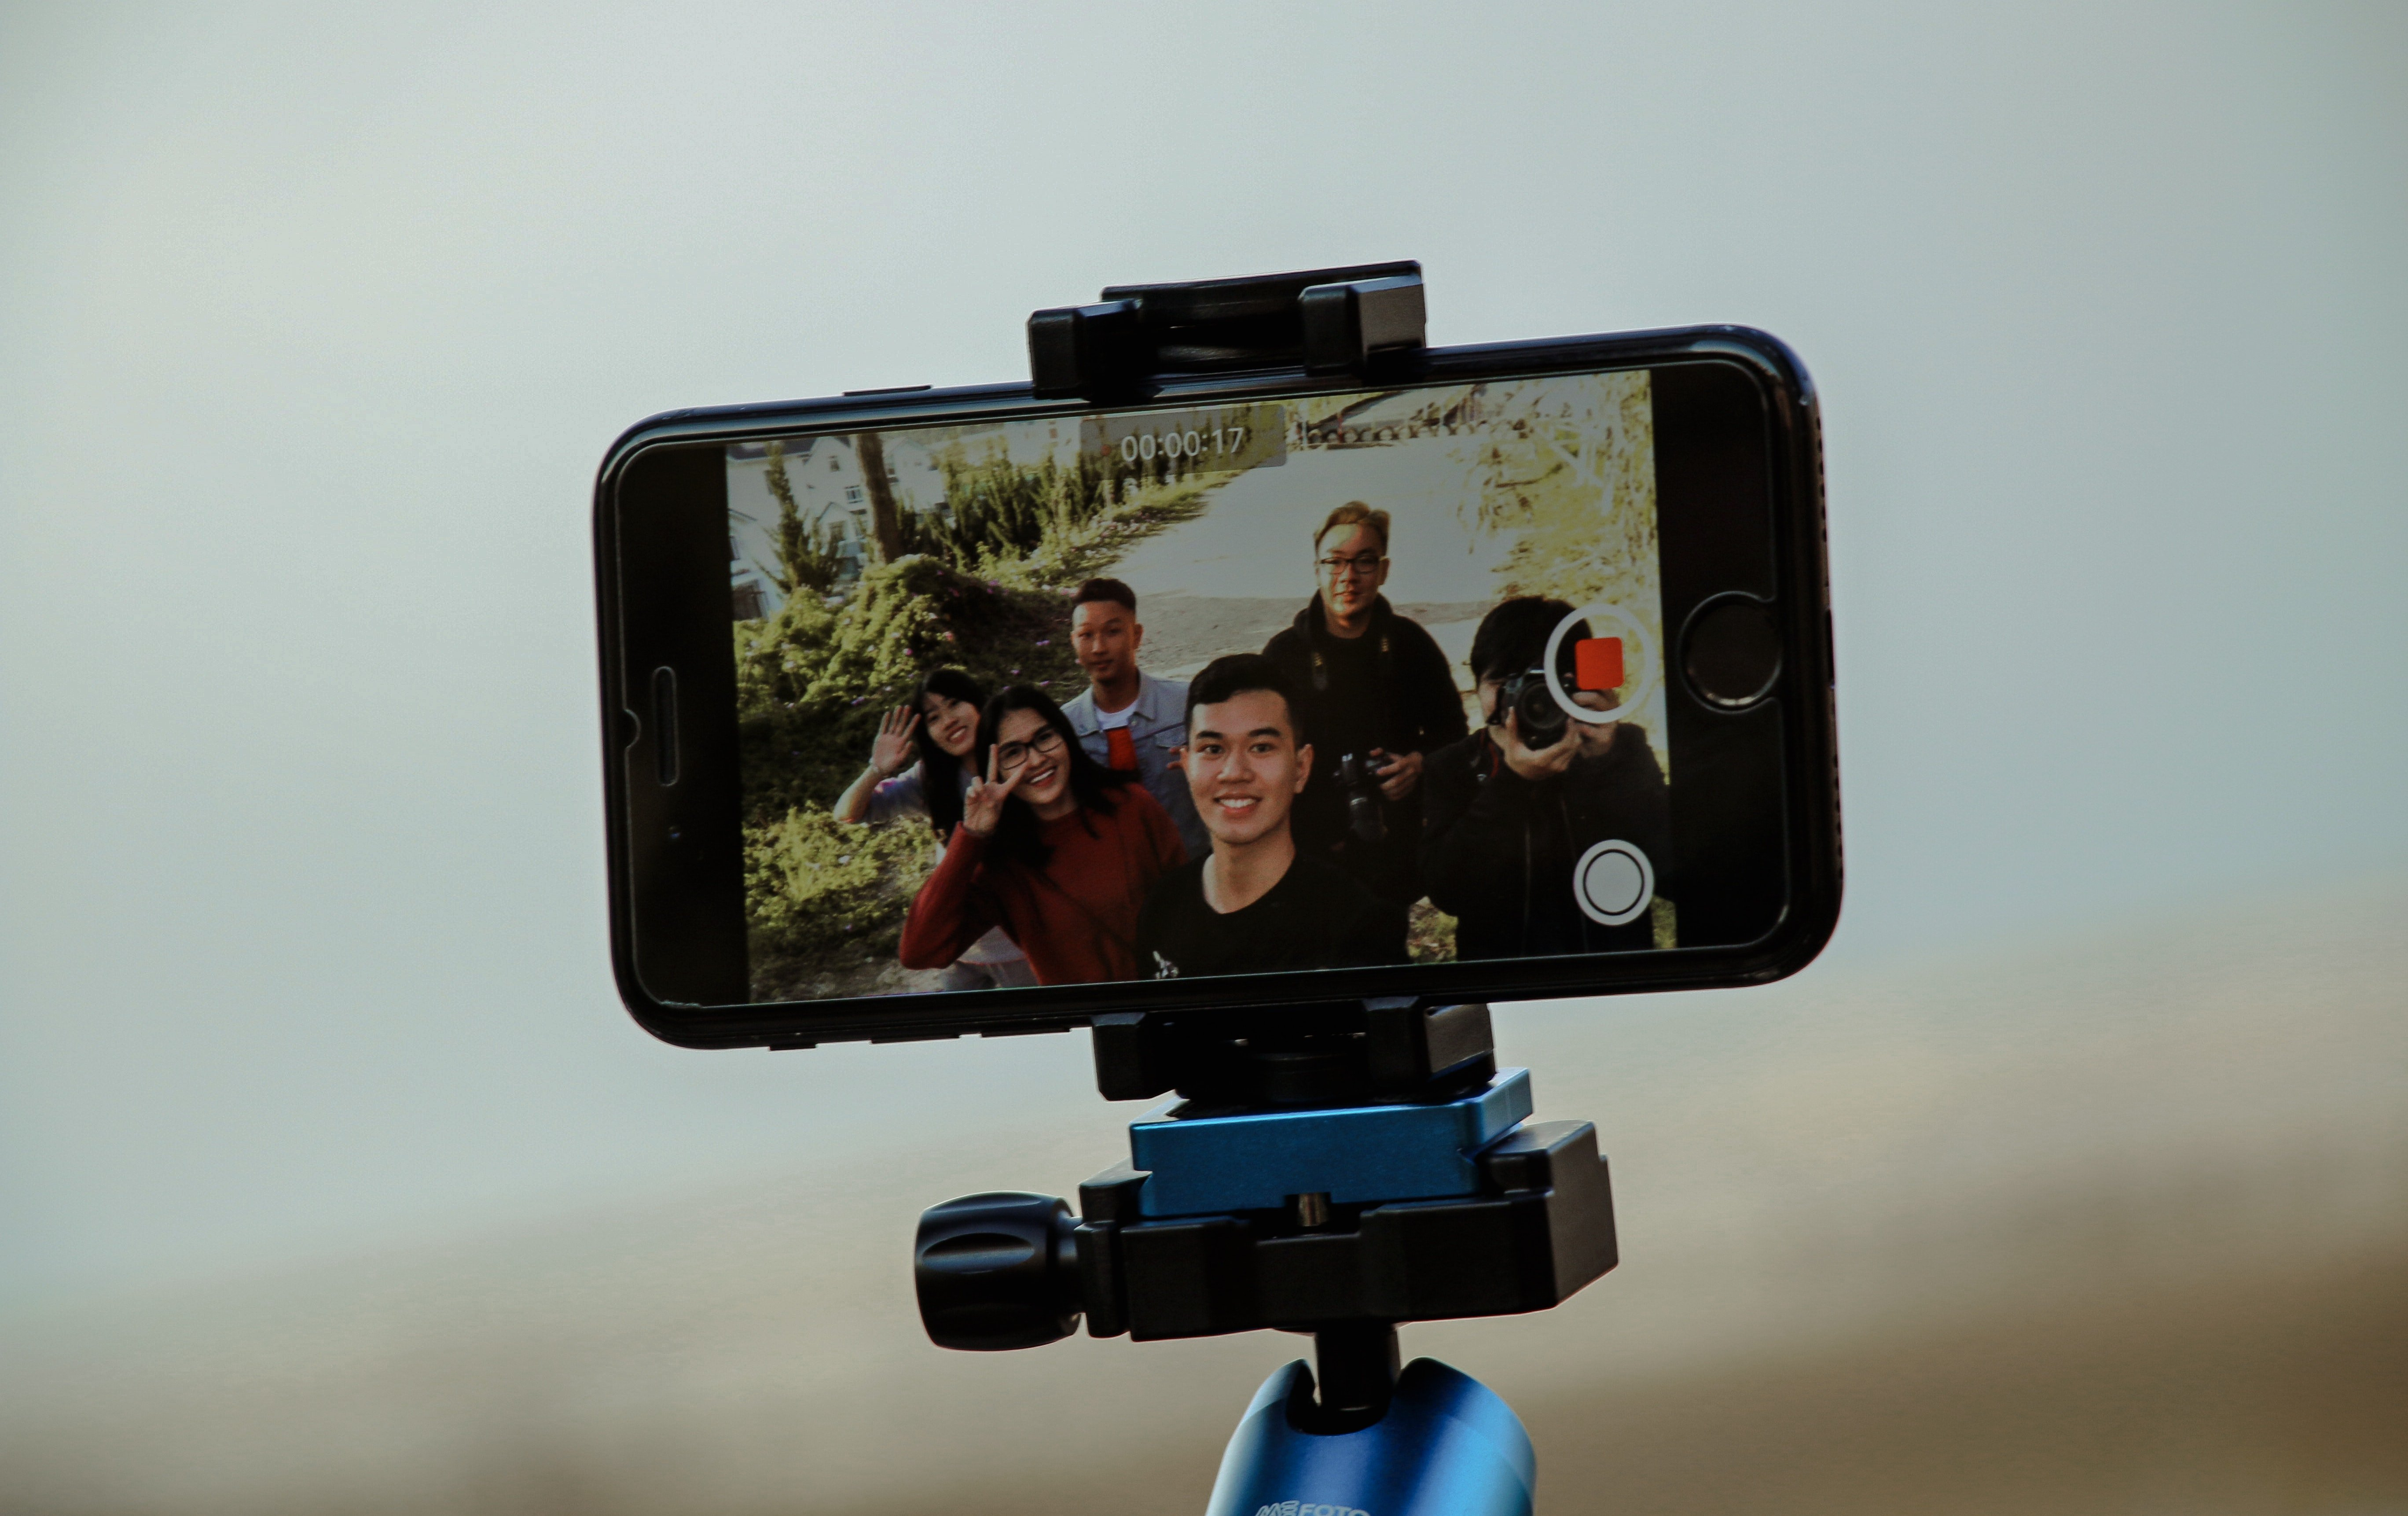 A person taking a video on their smartphone.